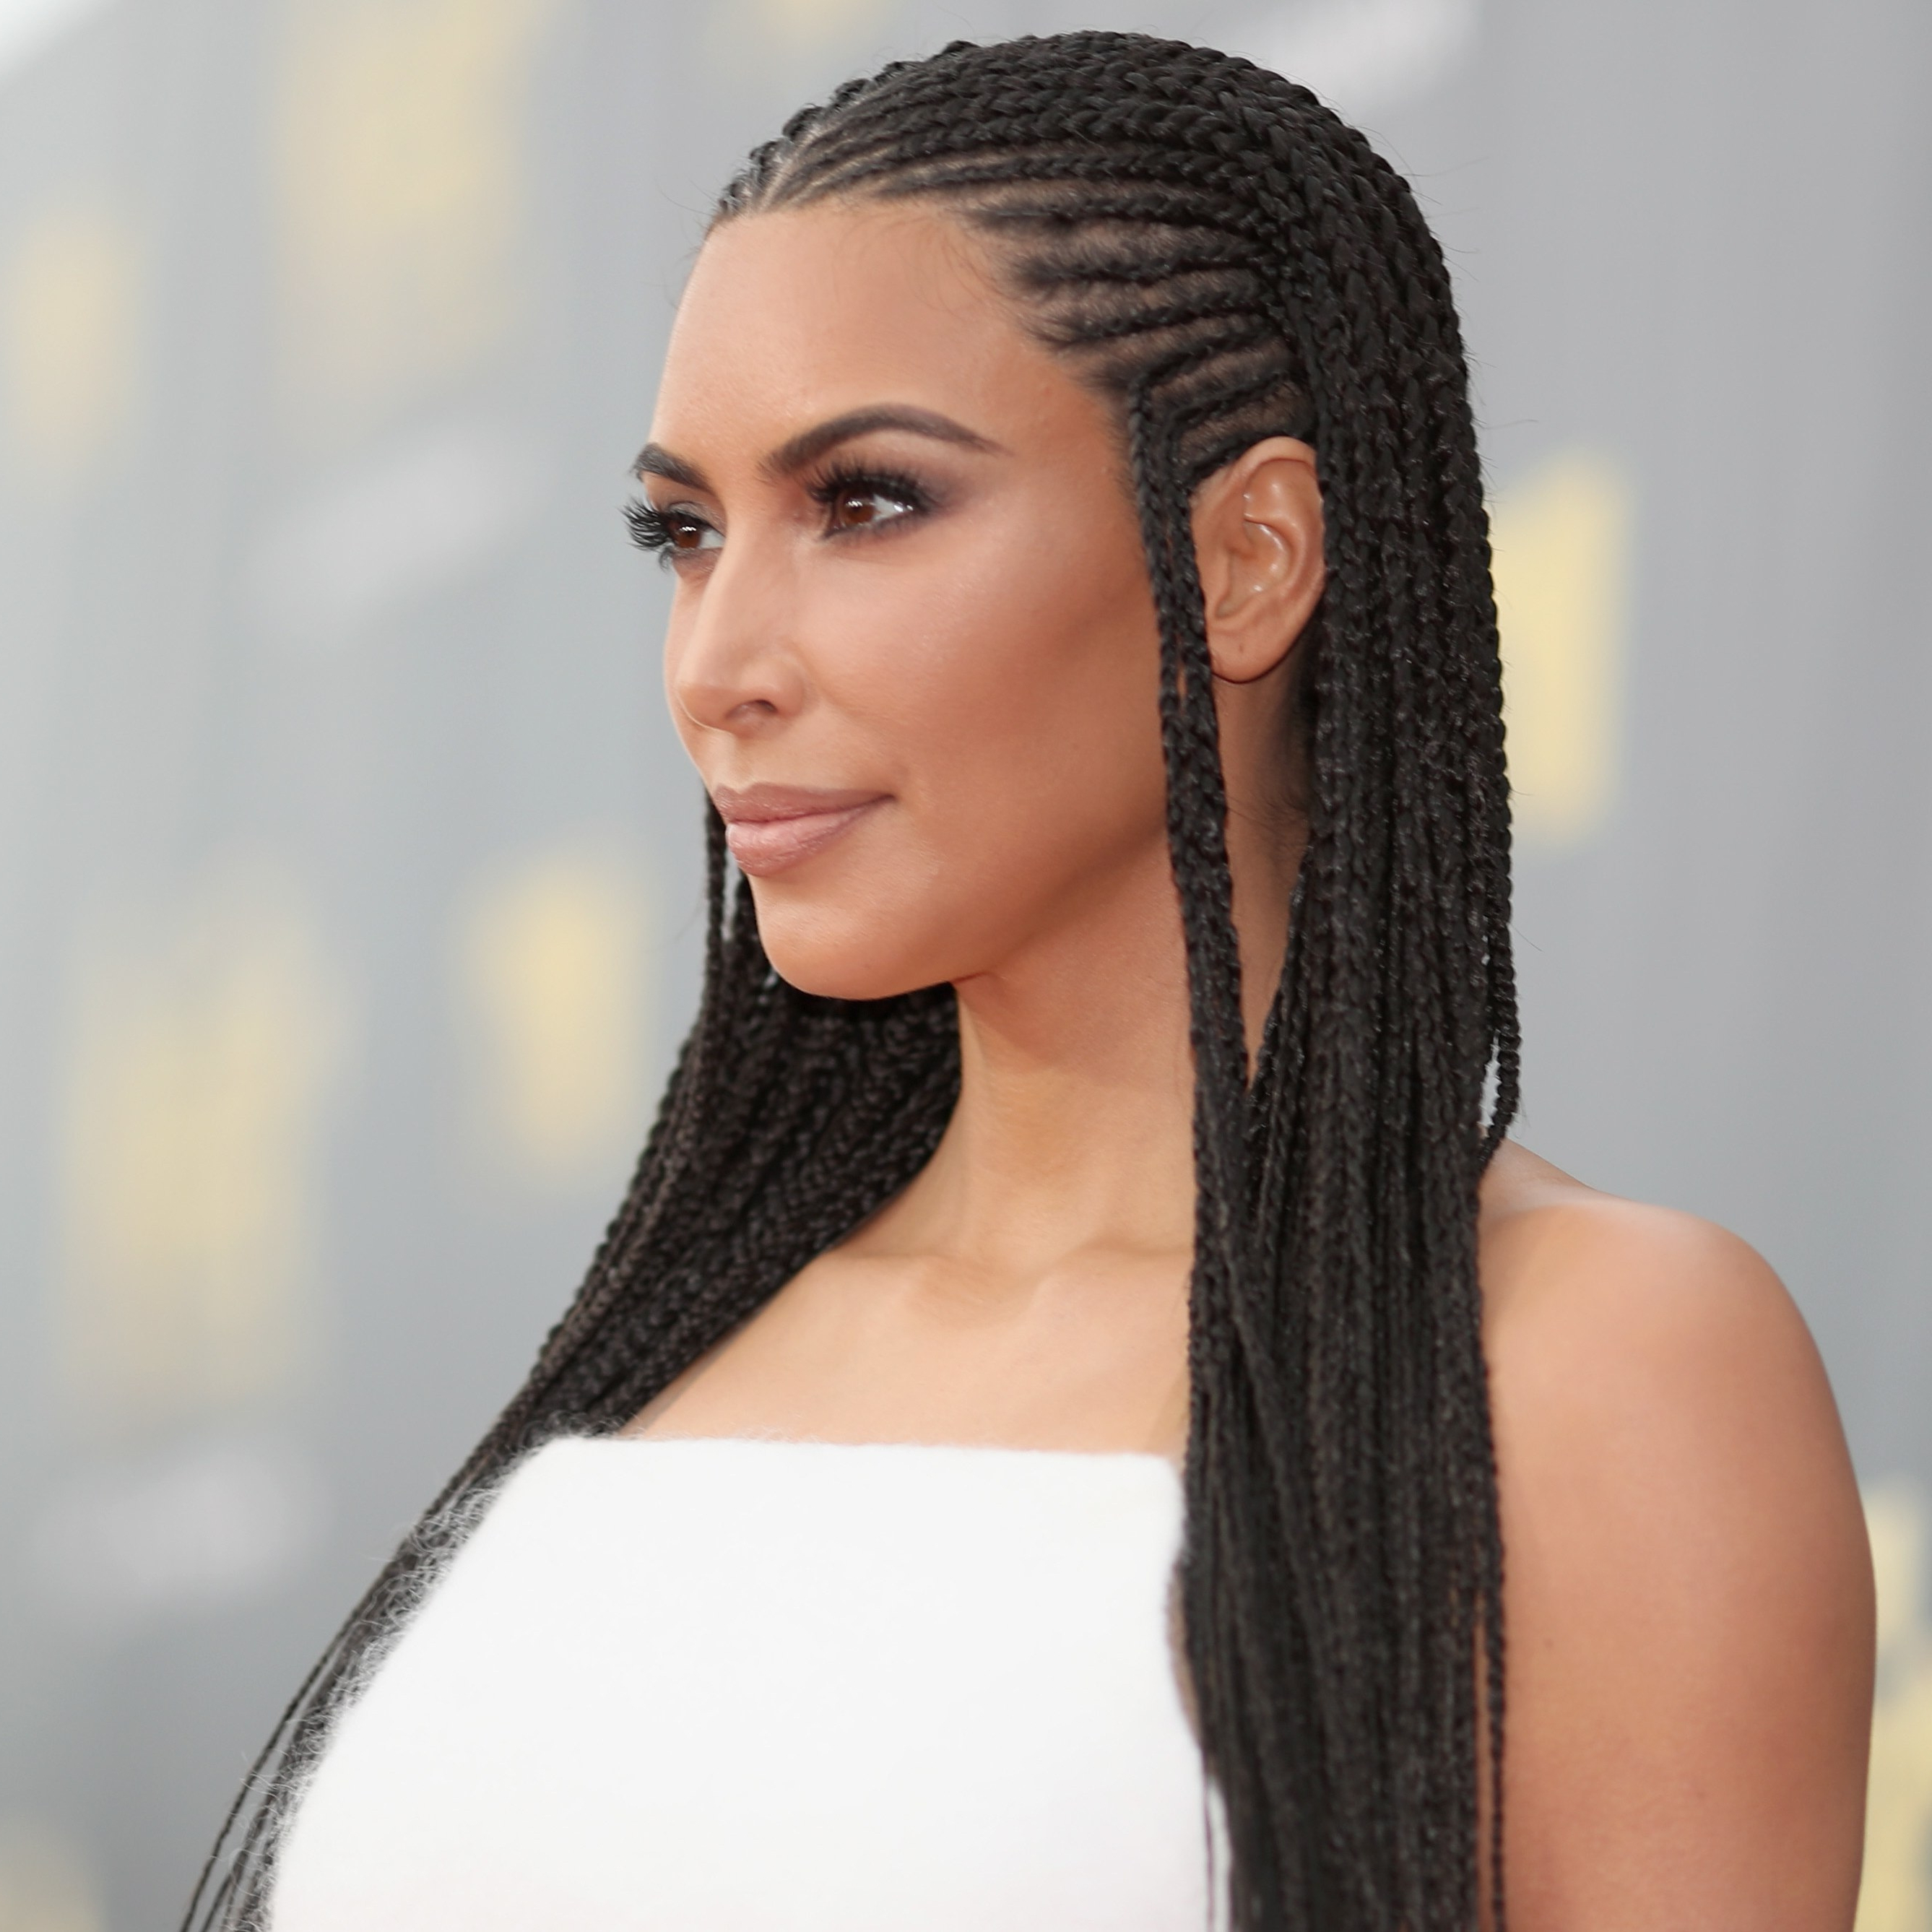 Hairstyles : Criss Cross Goddess Braids Hairstyles Wonderful Pertaining To Preferred Cornrow Braids Hairstyles With Ponytail (View 14 of 20)